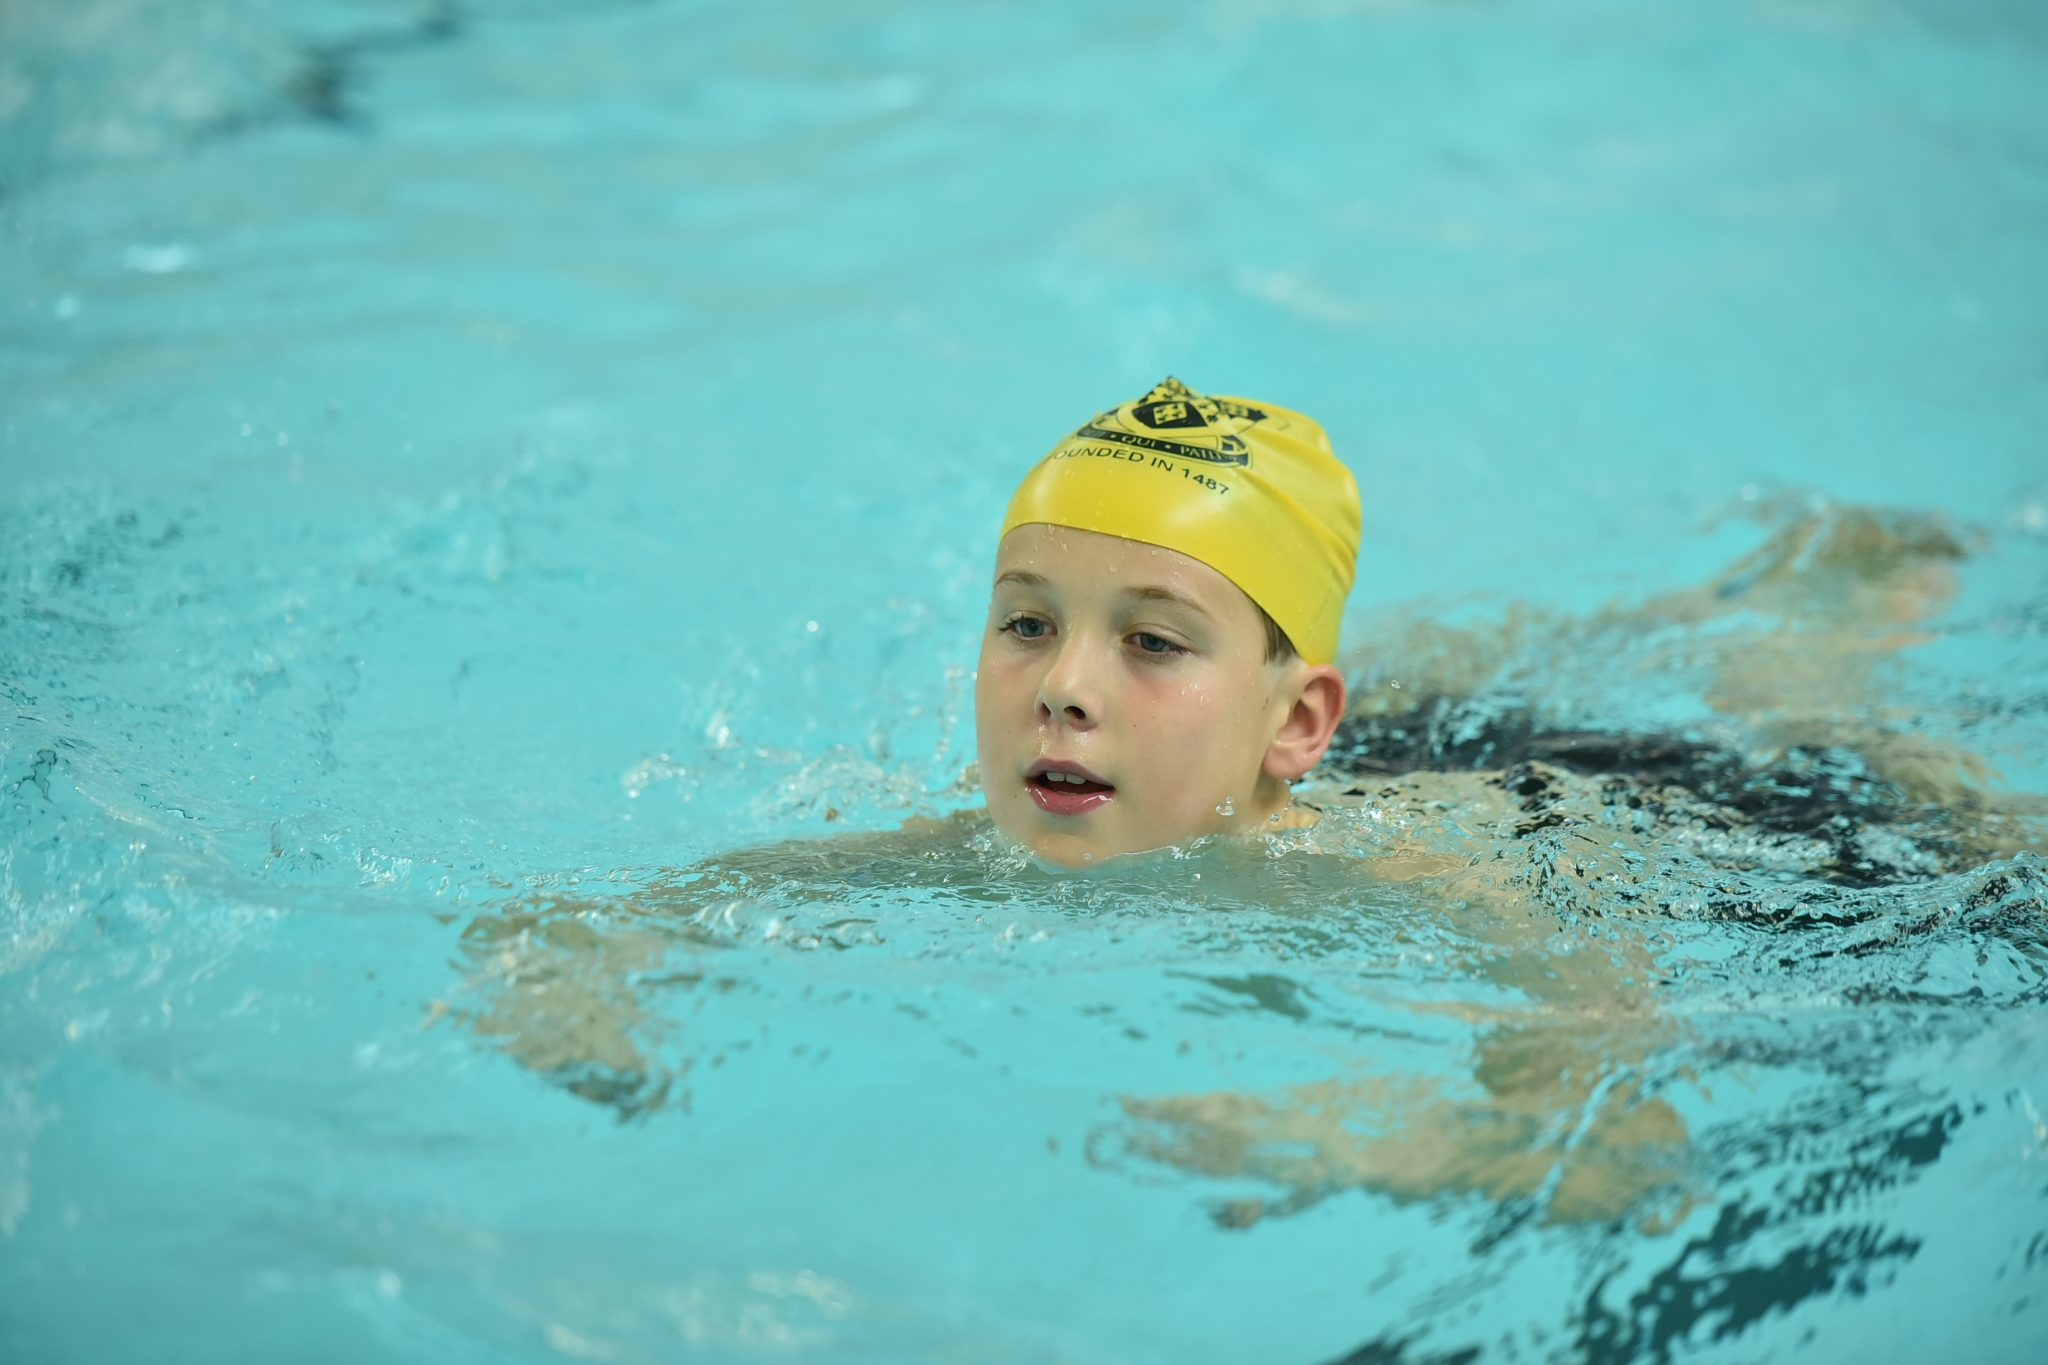 Junior Swimming Club